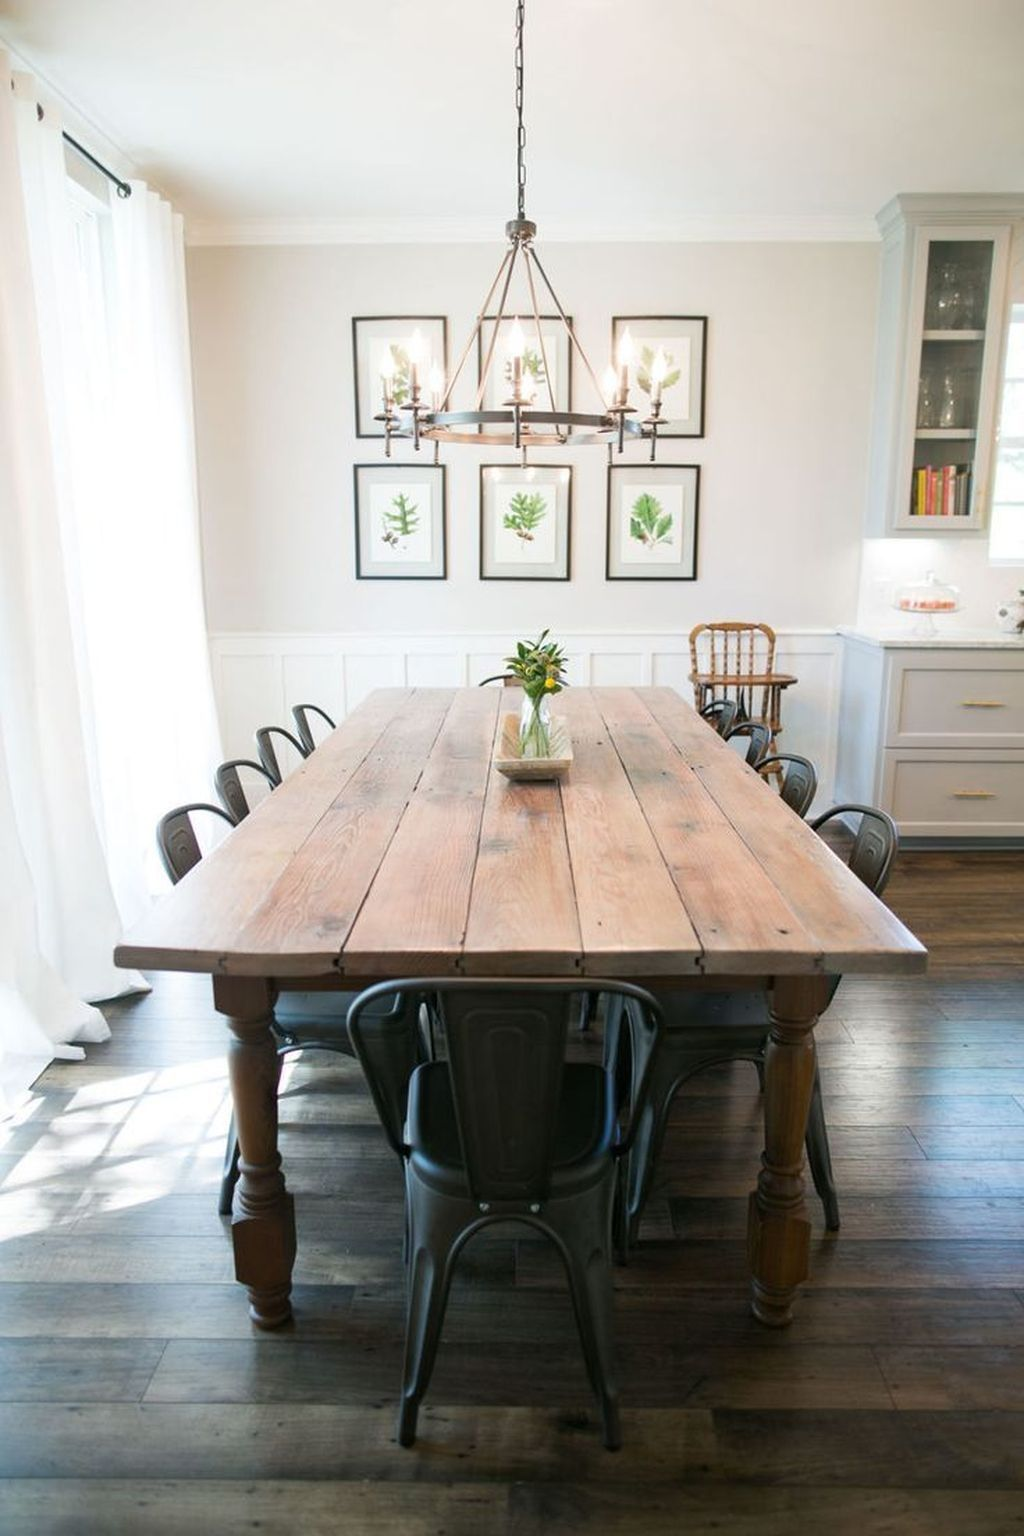 The Best Dining Room Round Table Design Ideas To Set In Your Room 16 Farmhouse Dining Rooms Decor Modern Farmhouse Dining Room Joanna Gaines Dining Room